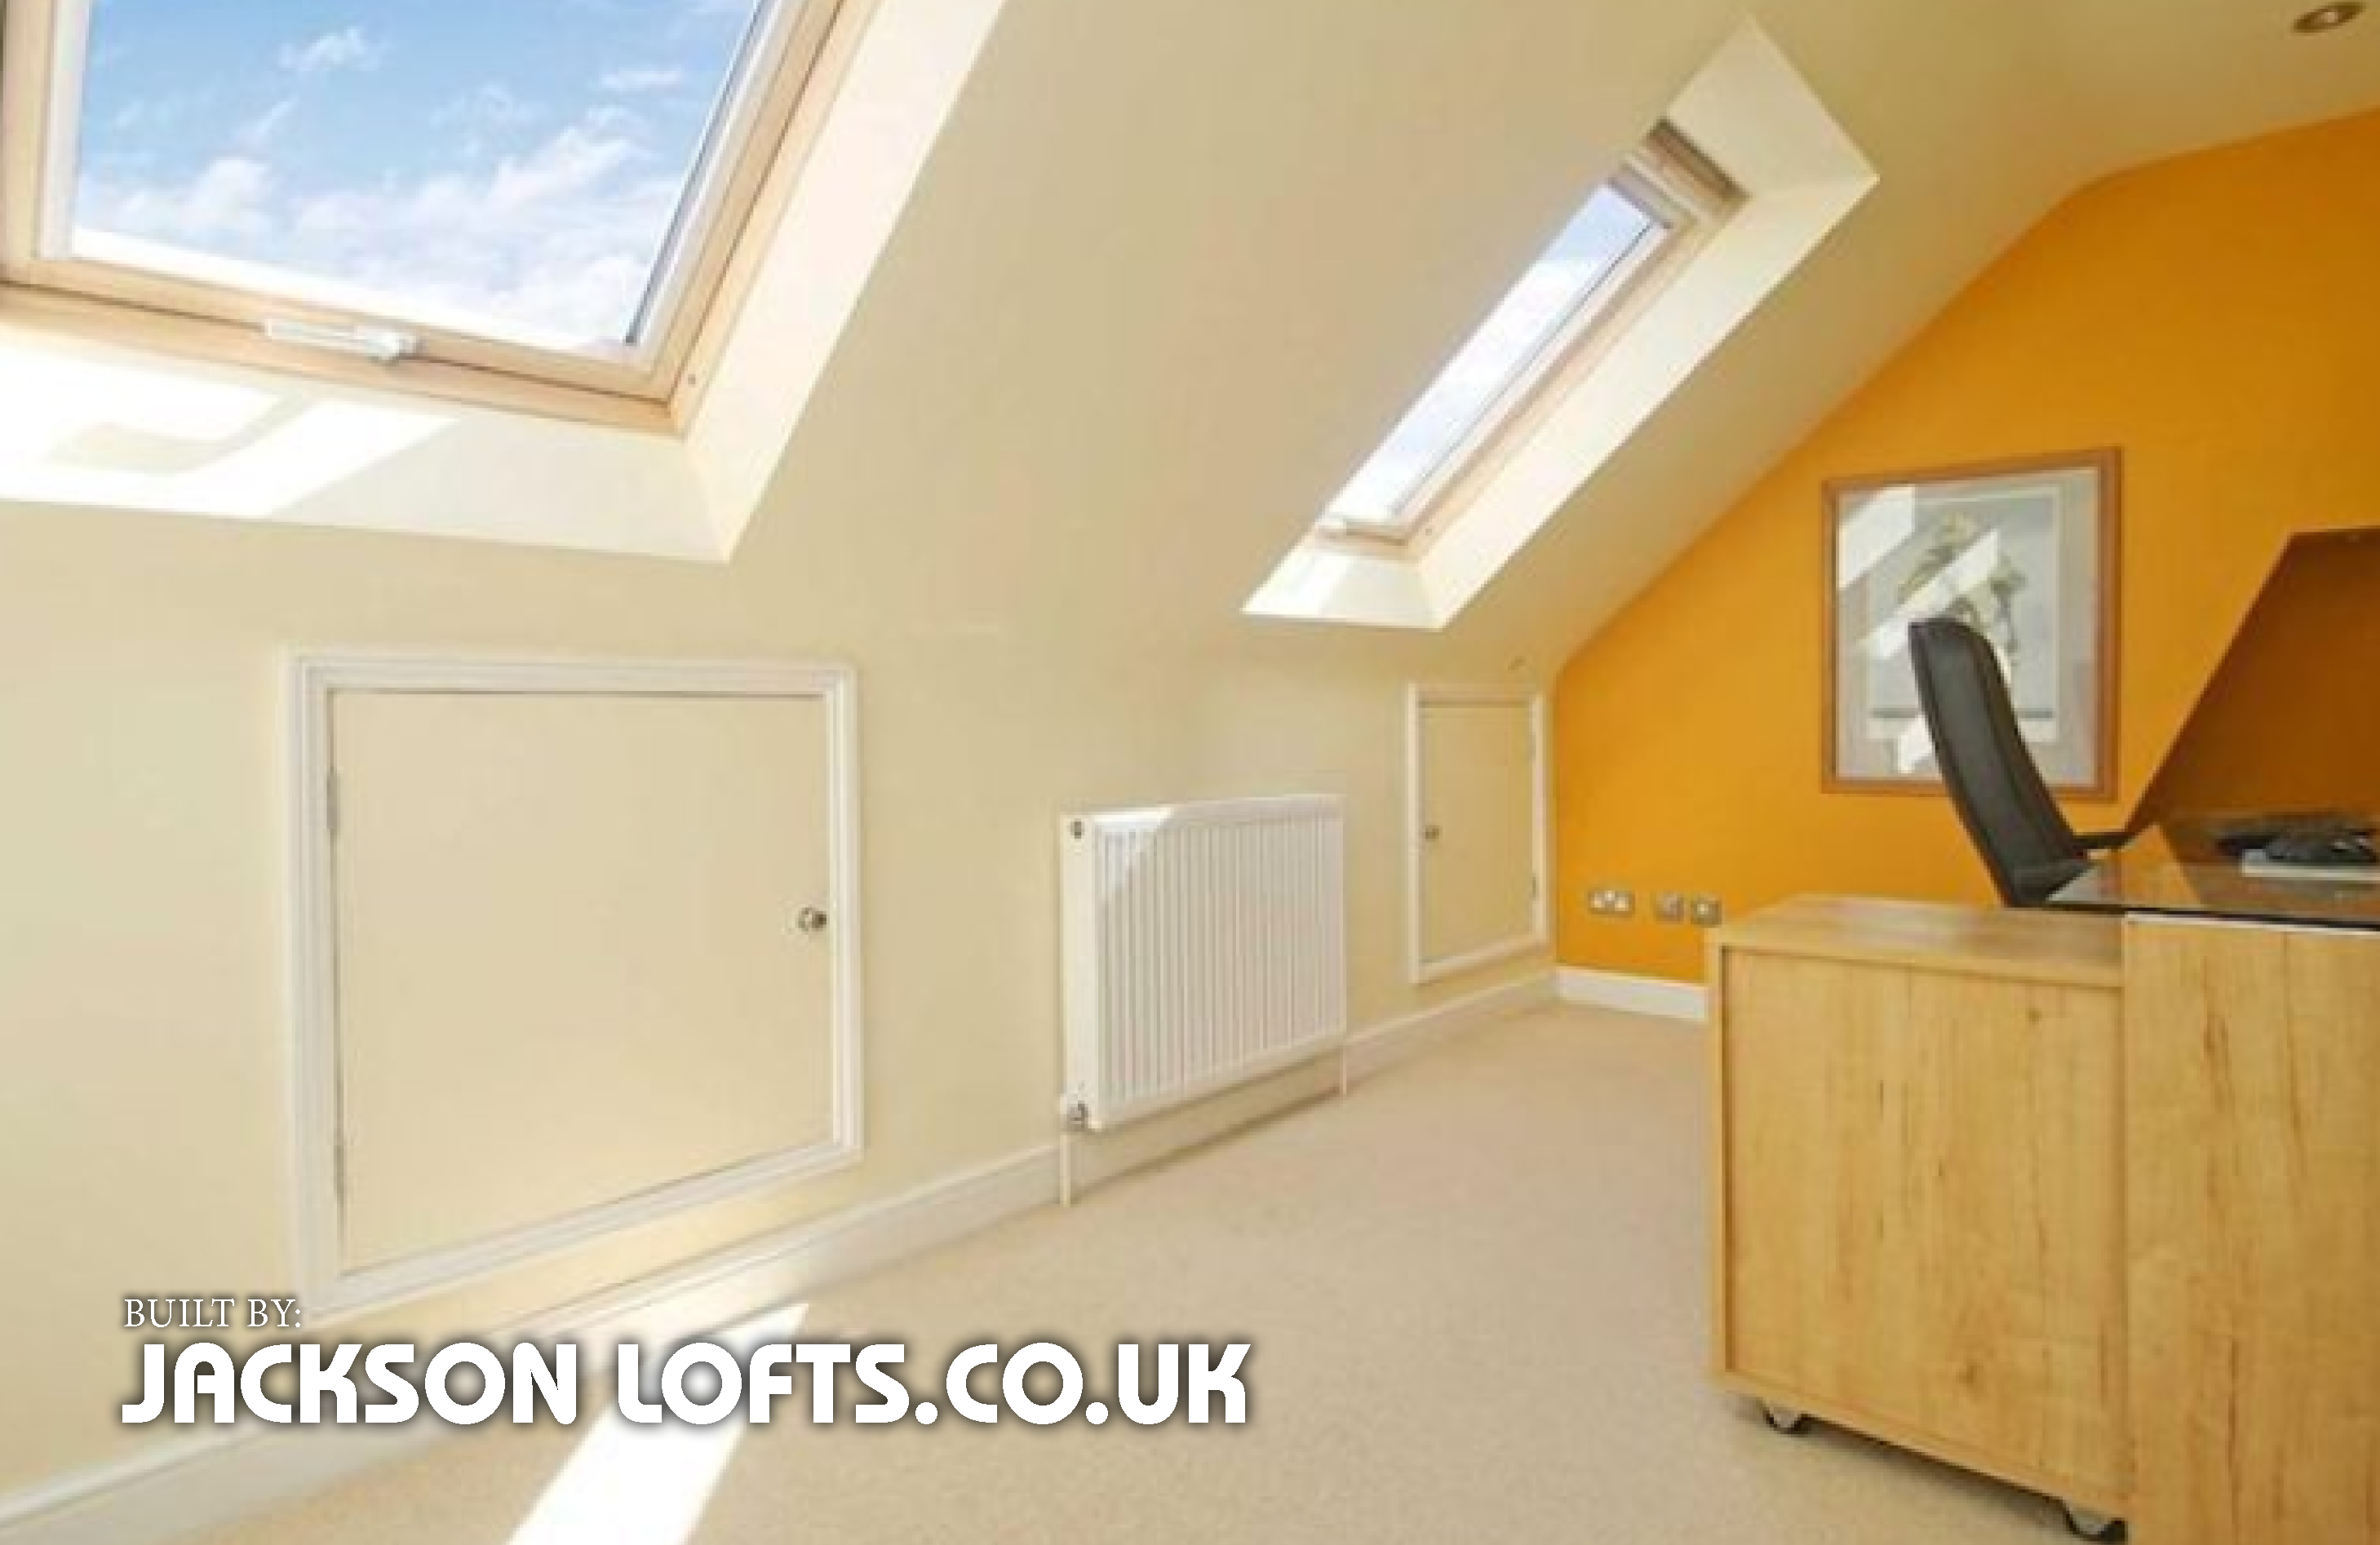 Loft conversion built by Jackson Lofts, Brighton